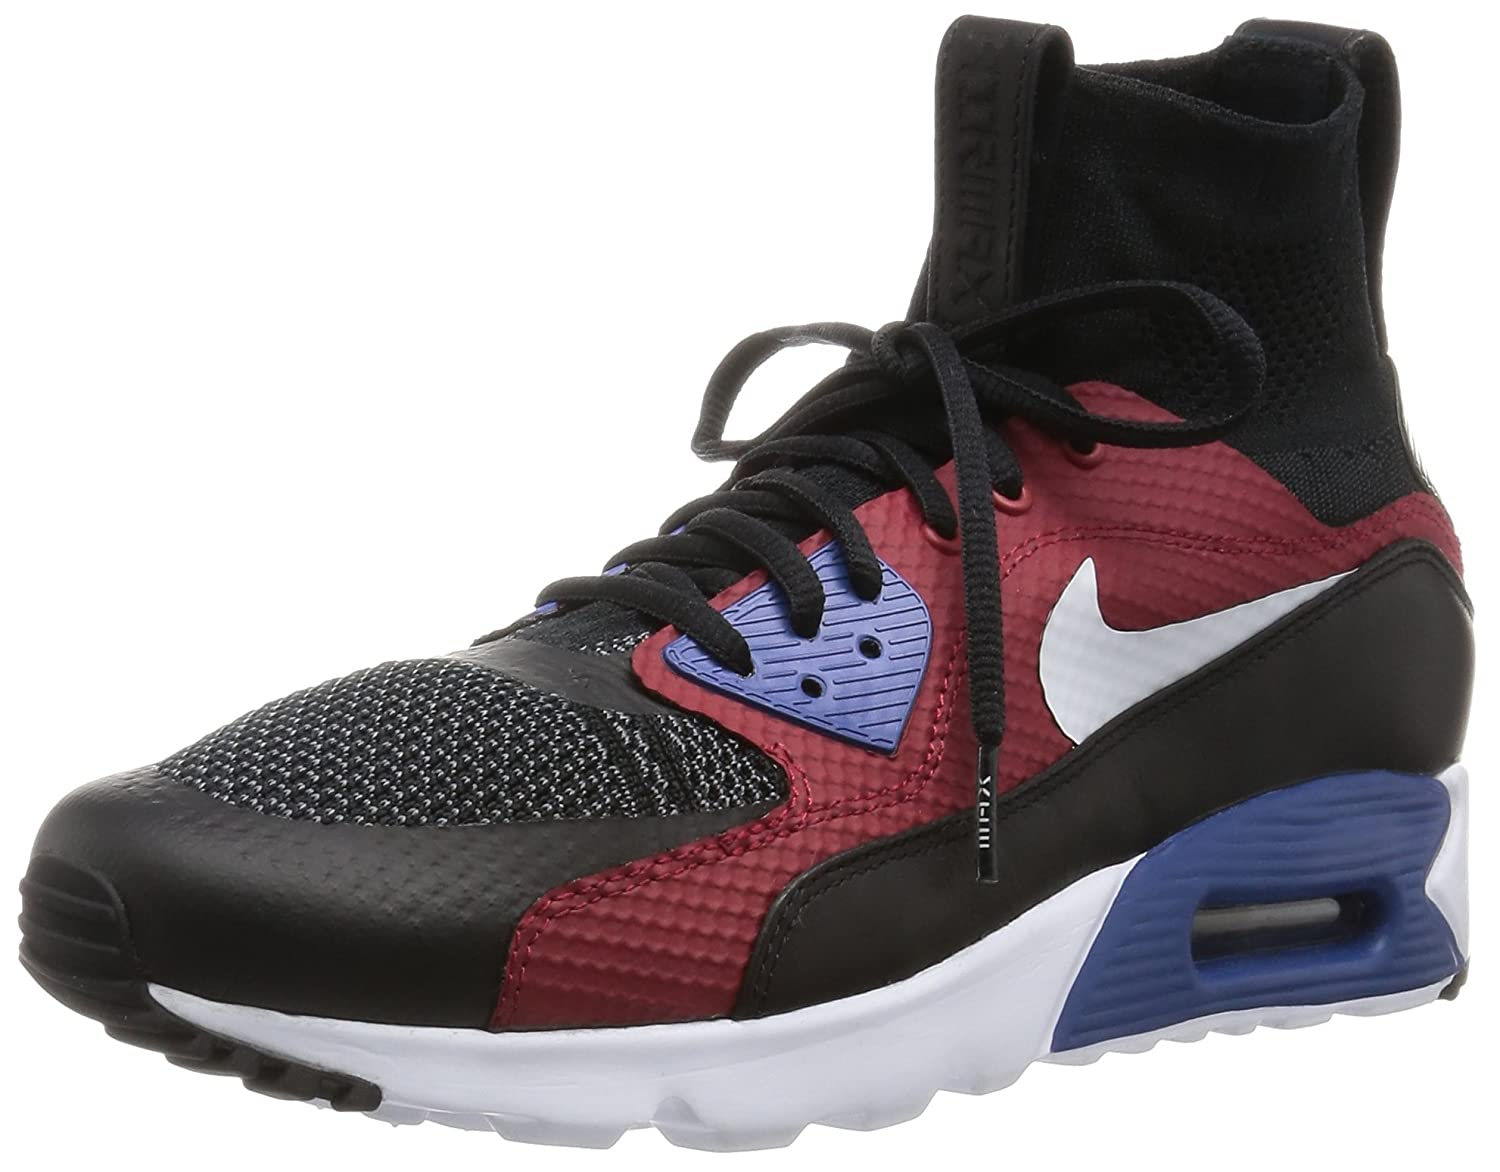 NIKE Air Max 90 Ultra Superfly Mens Running Trainers 850613 Sneakers Shoes B008S84YZS 9 D(M) US|Black/Dark Grey/White